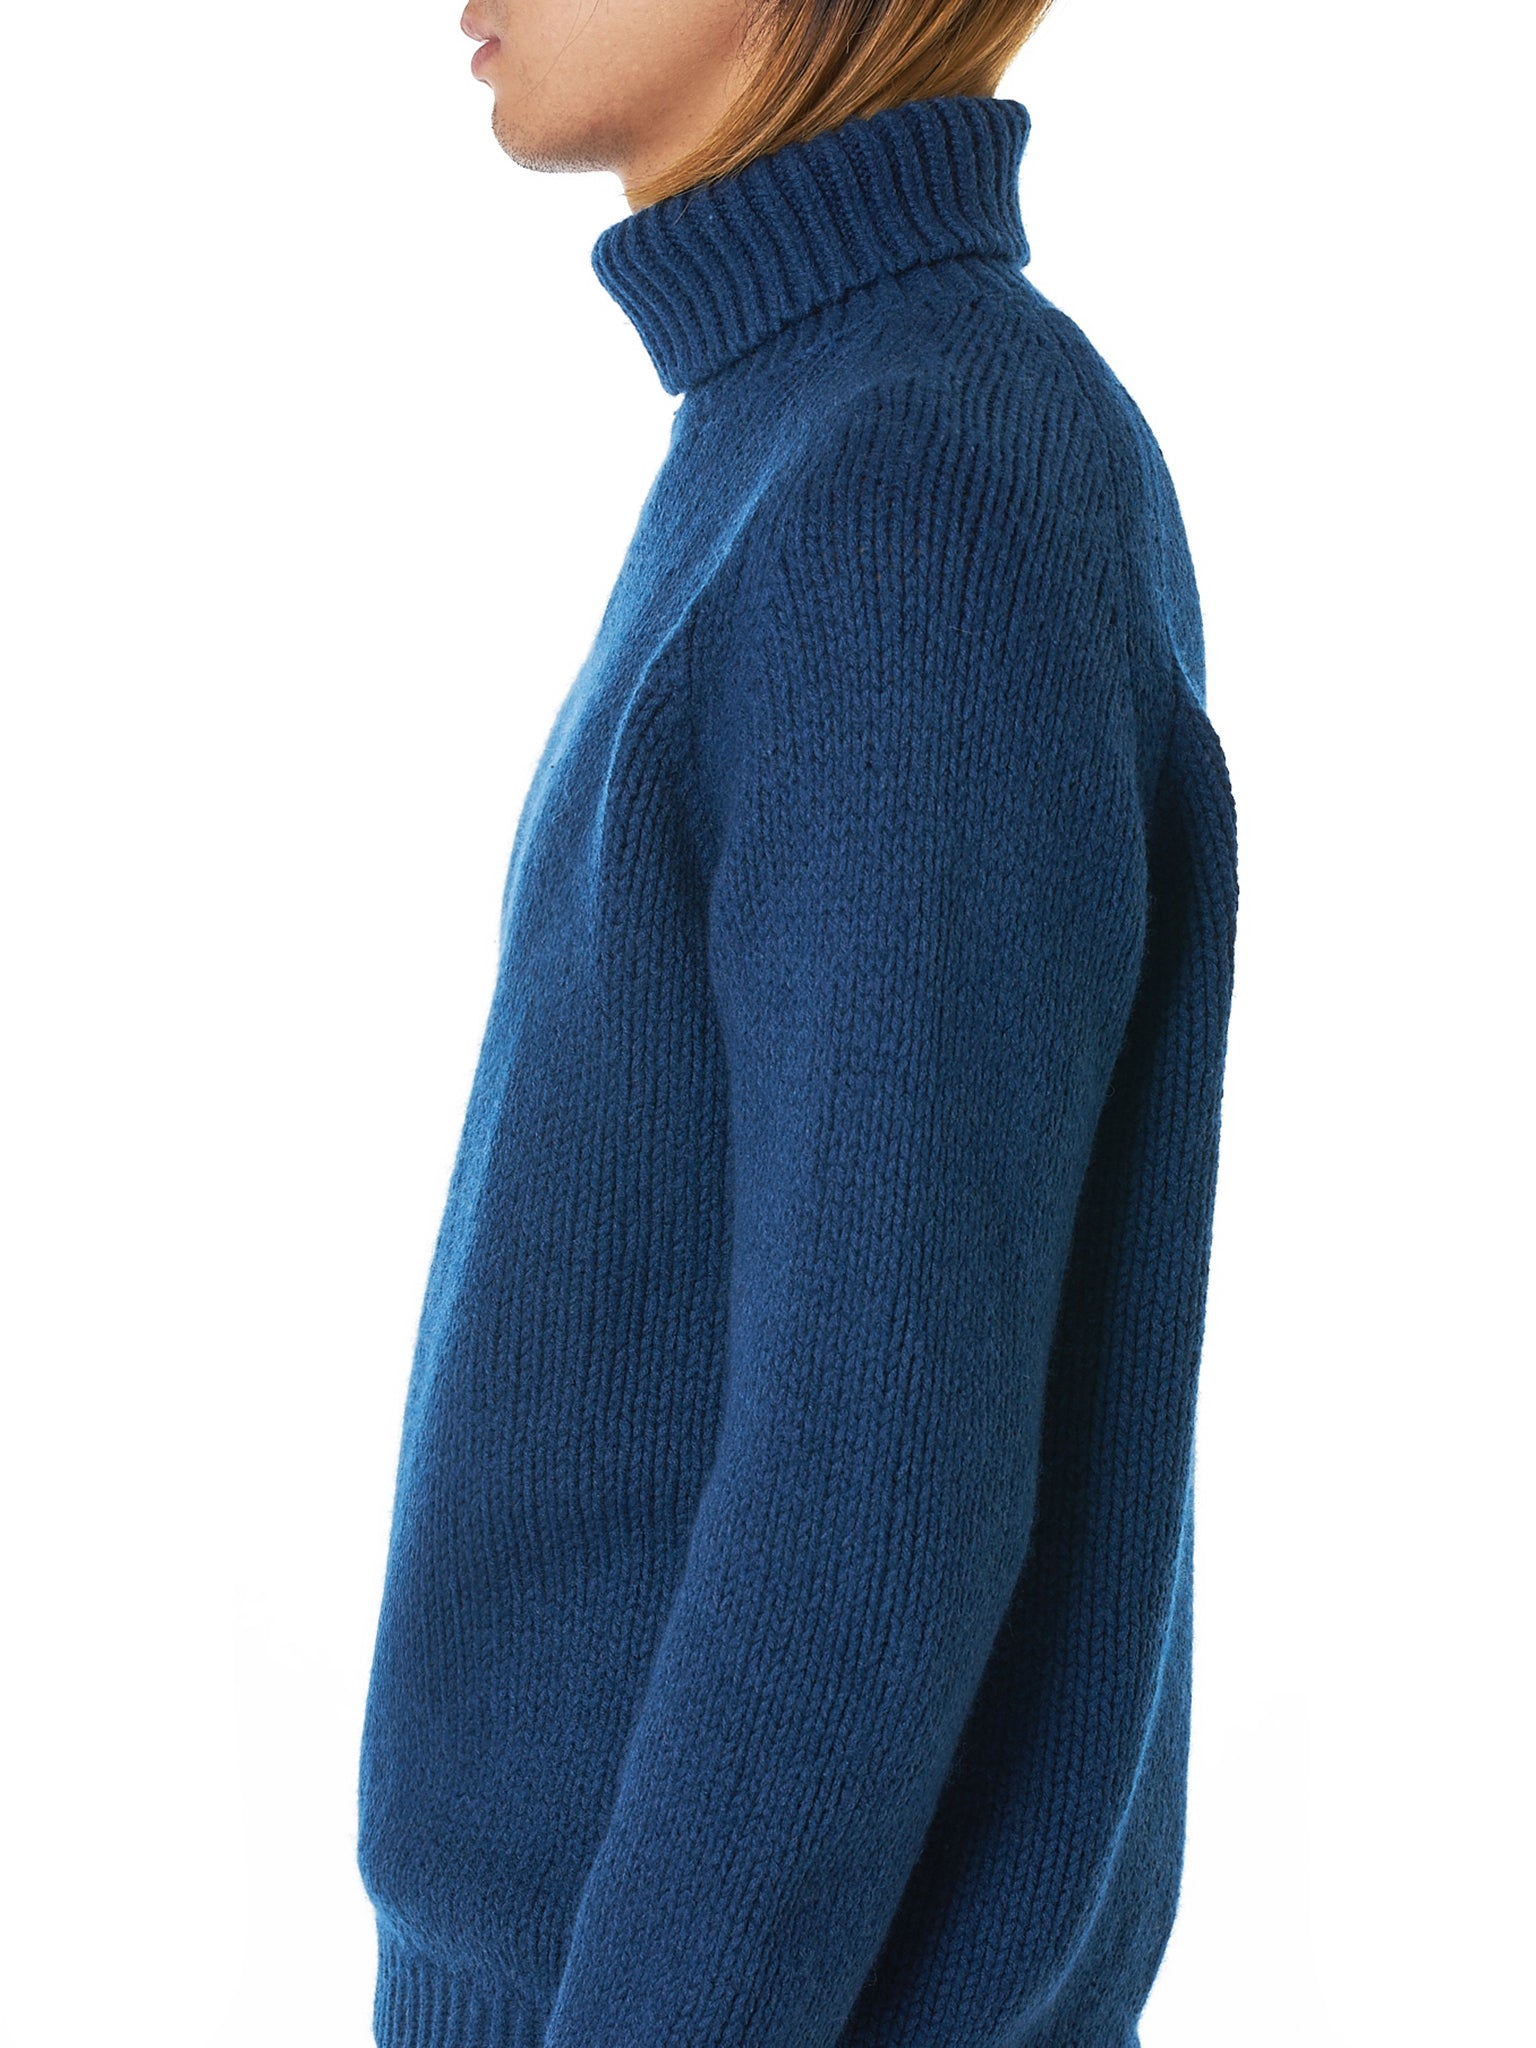 Bleu de Cocagne Turtleneck Sweater - Hlorenzo Detail 1